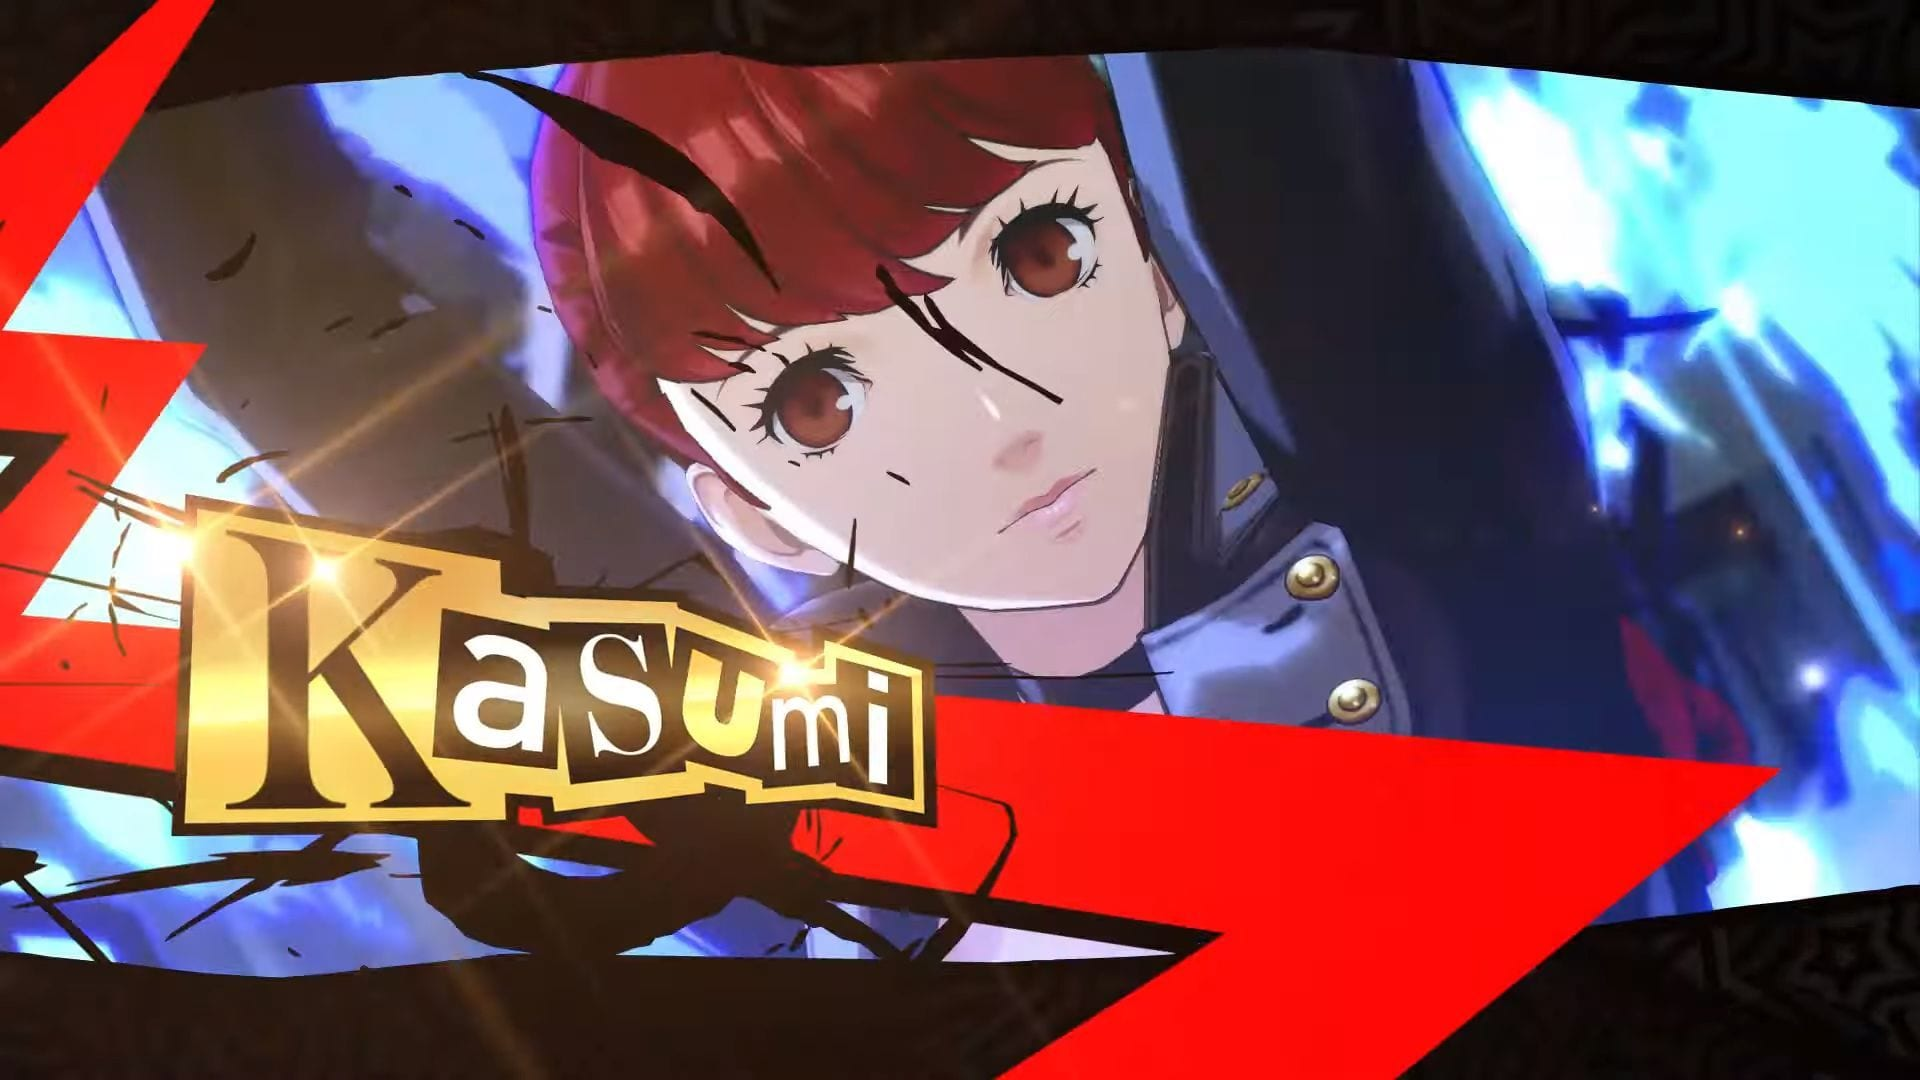 Persona 5 Royal Gets New Trailer Showing The Phantom Thieves In Action